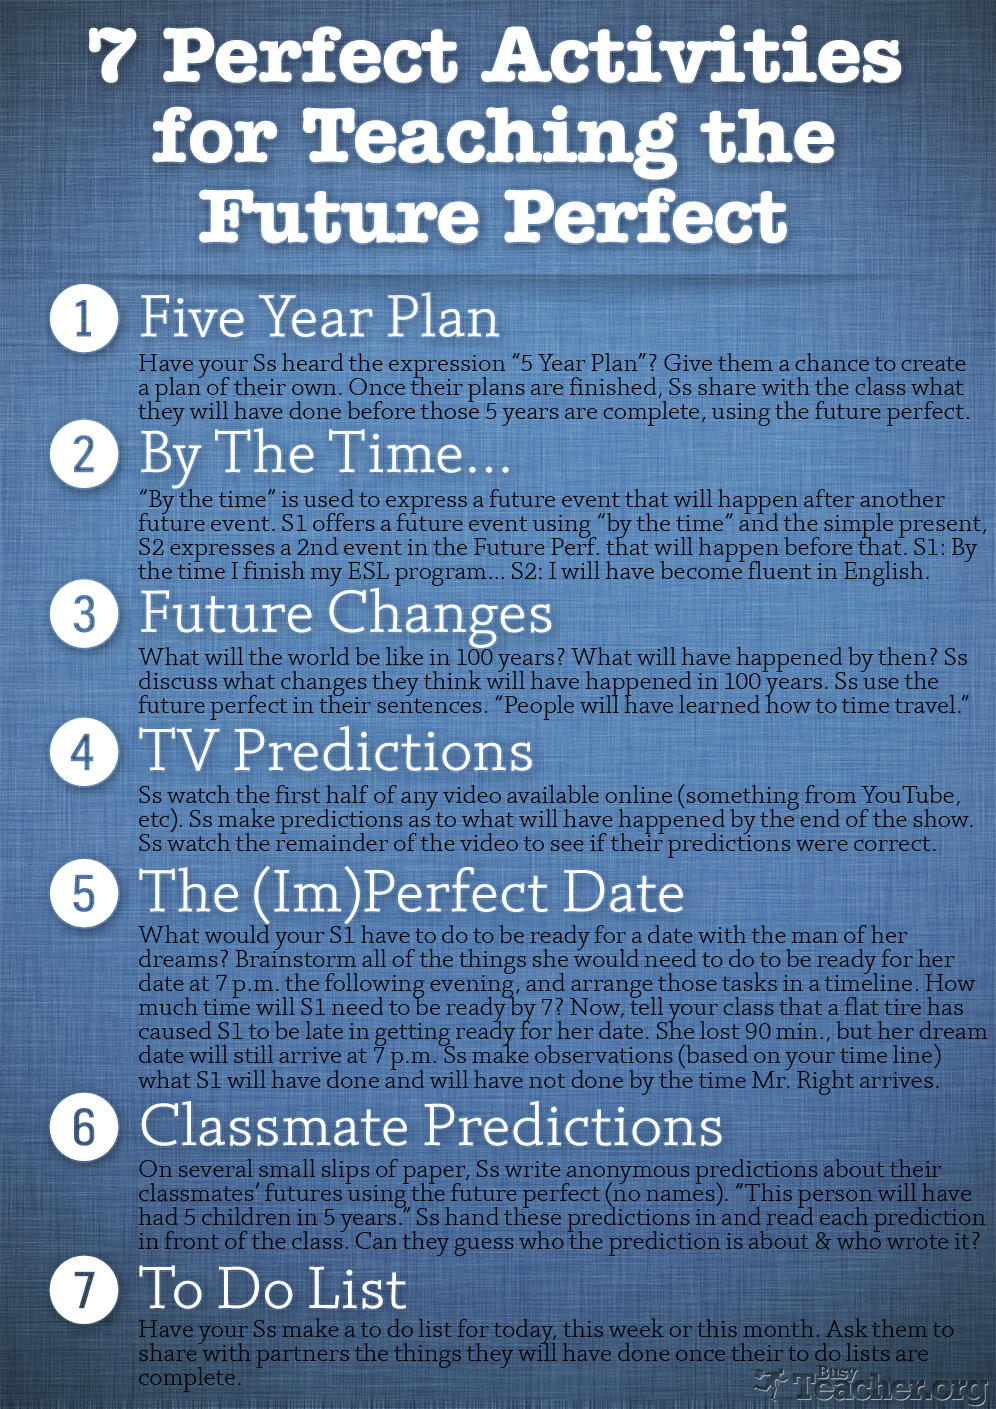 7 Perfect Activities to Teach the Future Perfect: Poster